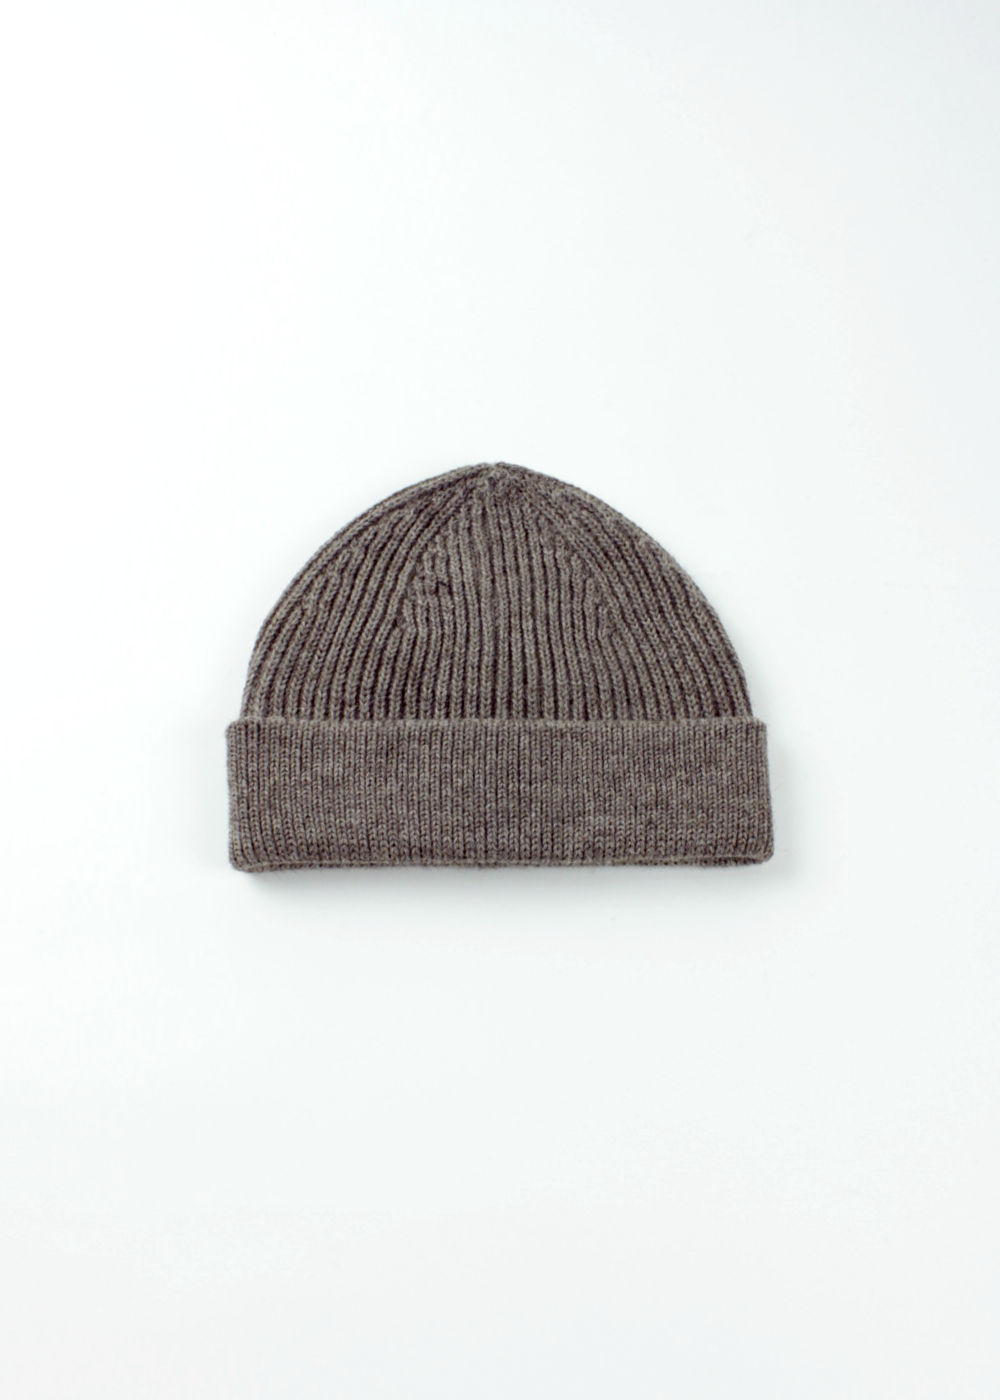 Andersen-Andersen-Beanie Medium-Natural-Taupe-01